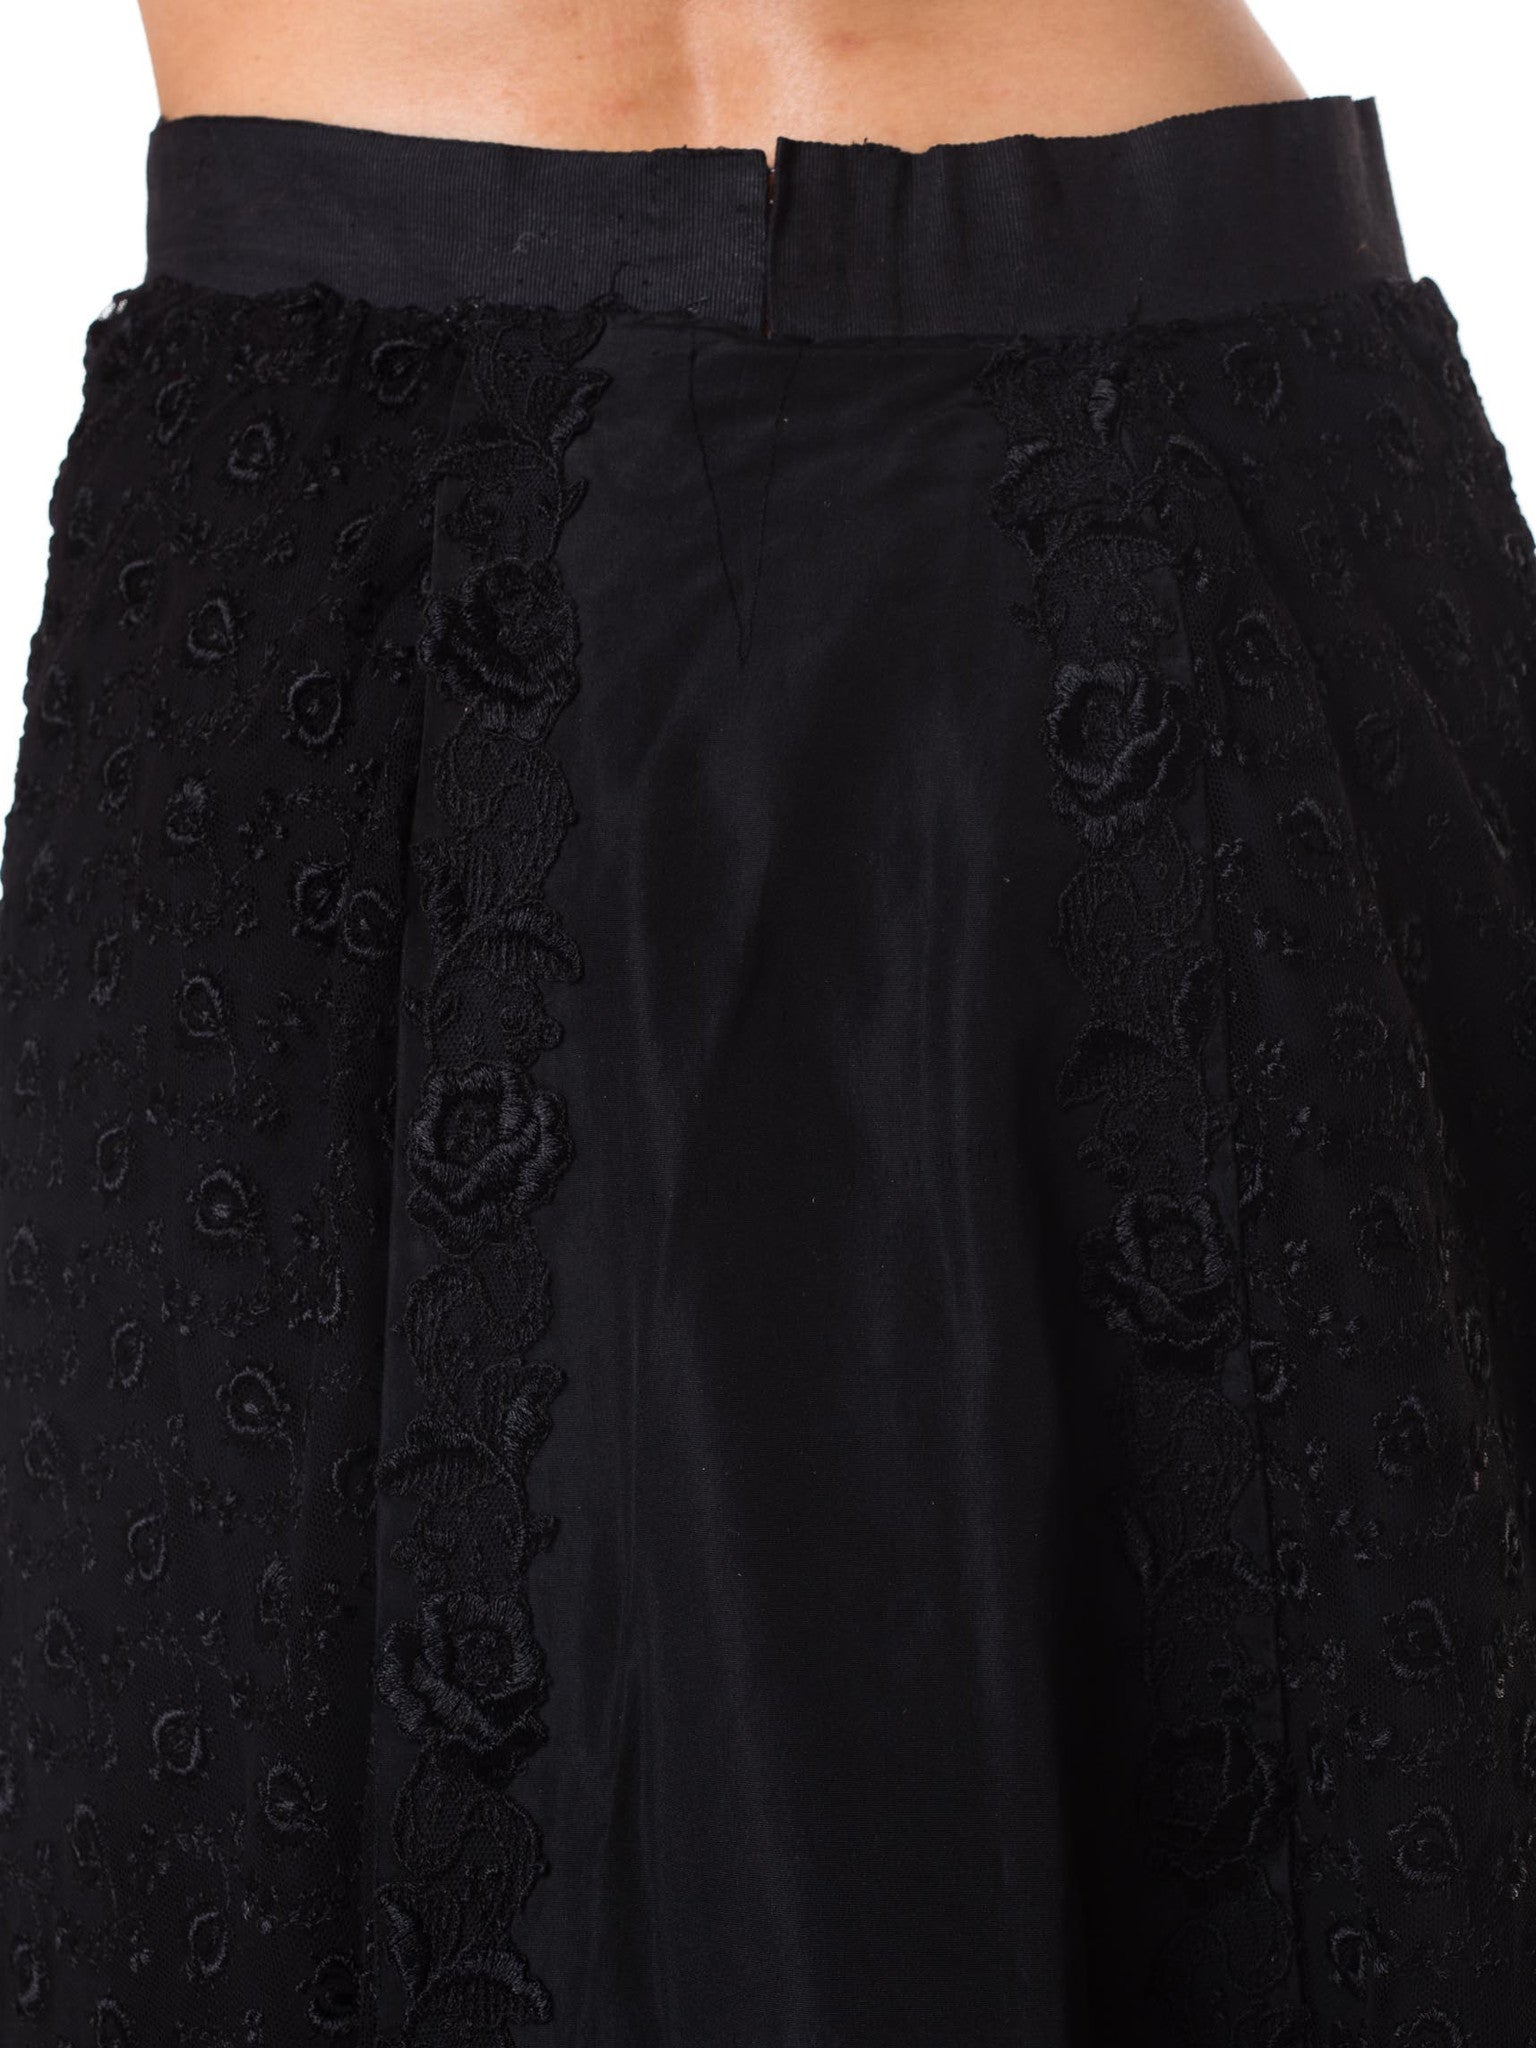 1900S Black Silk & Lace Victorian Border Embroidered Skirt